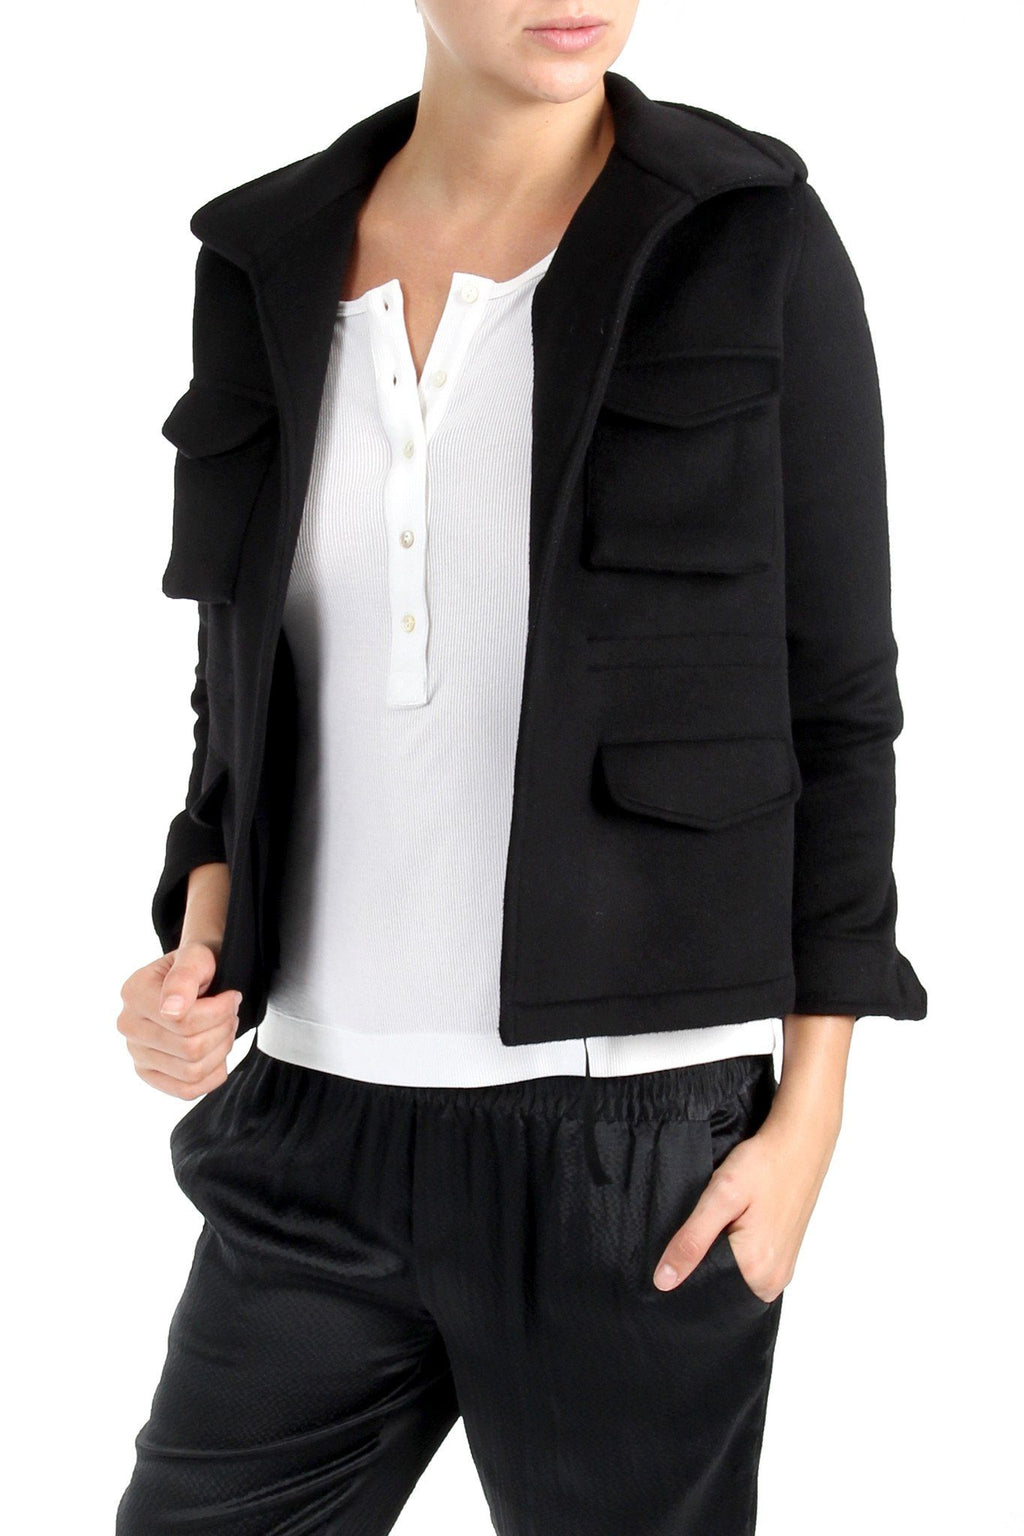 Wool Cashmere Jacket Outerwear Marie France Van Damme 0 Black